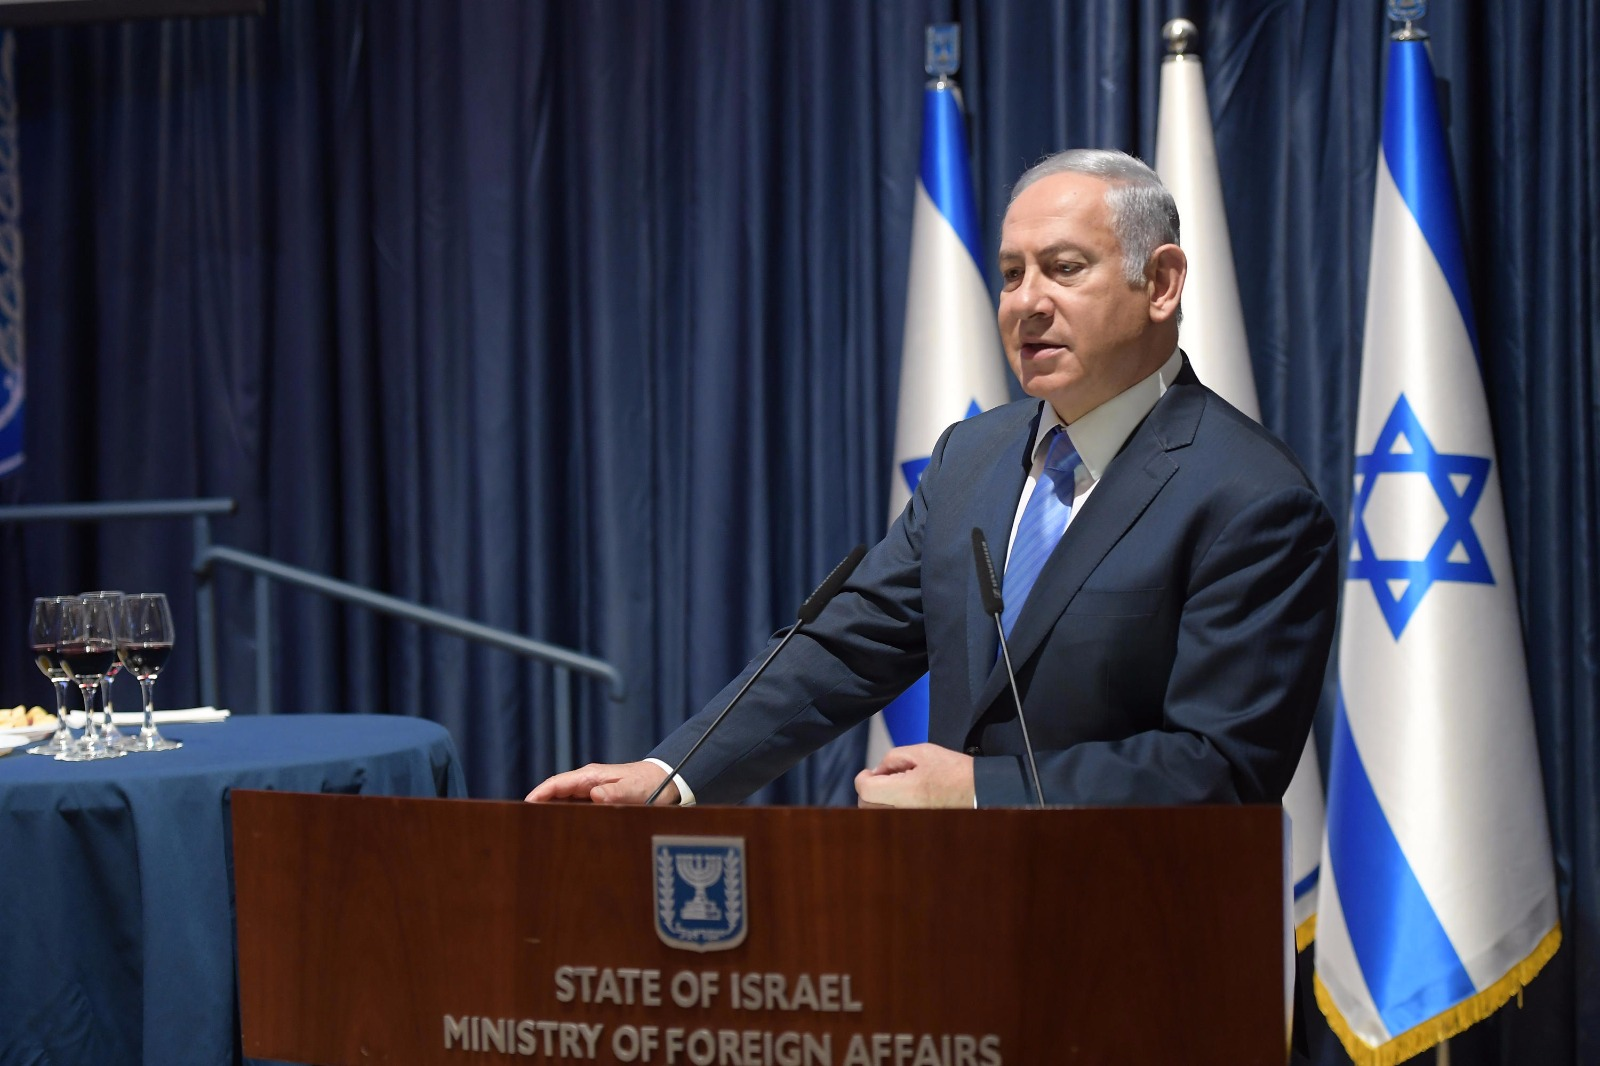 Netanyahu says Israel working 'near and far' against Iran